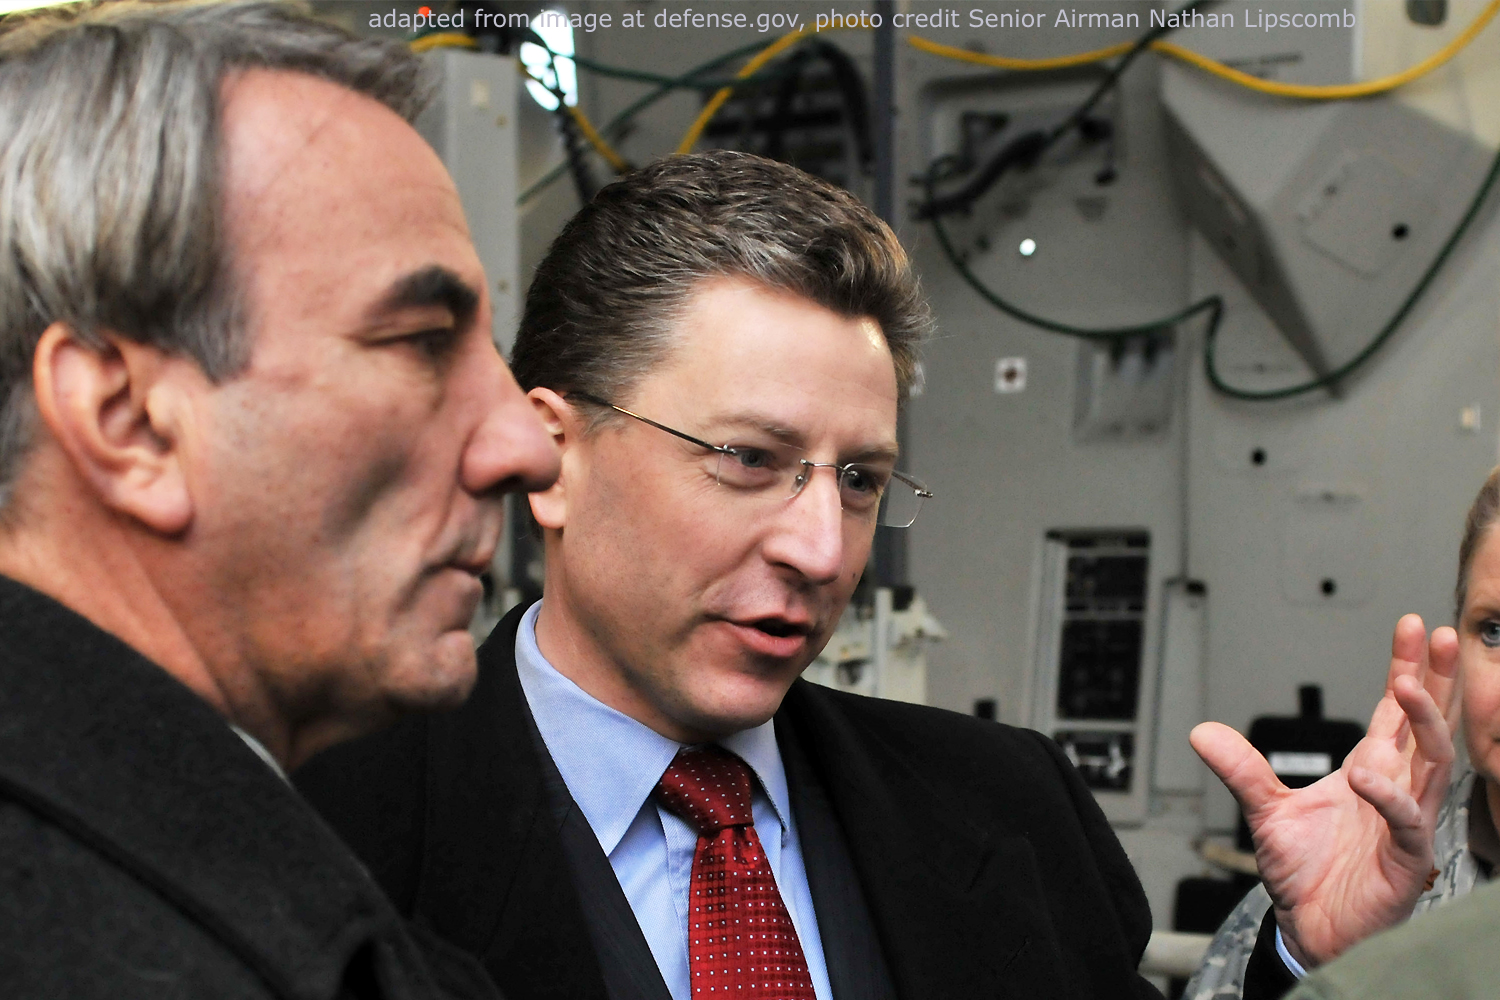 File Photo of Kurt Volker and W. Bruce Weinrod, adapted from image at defense.gov with photo credit to Senior Airman Nathan Lipscomb